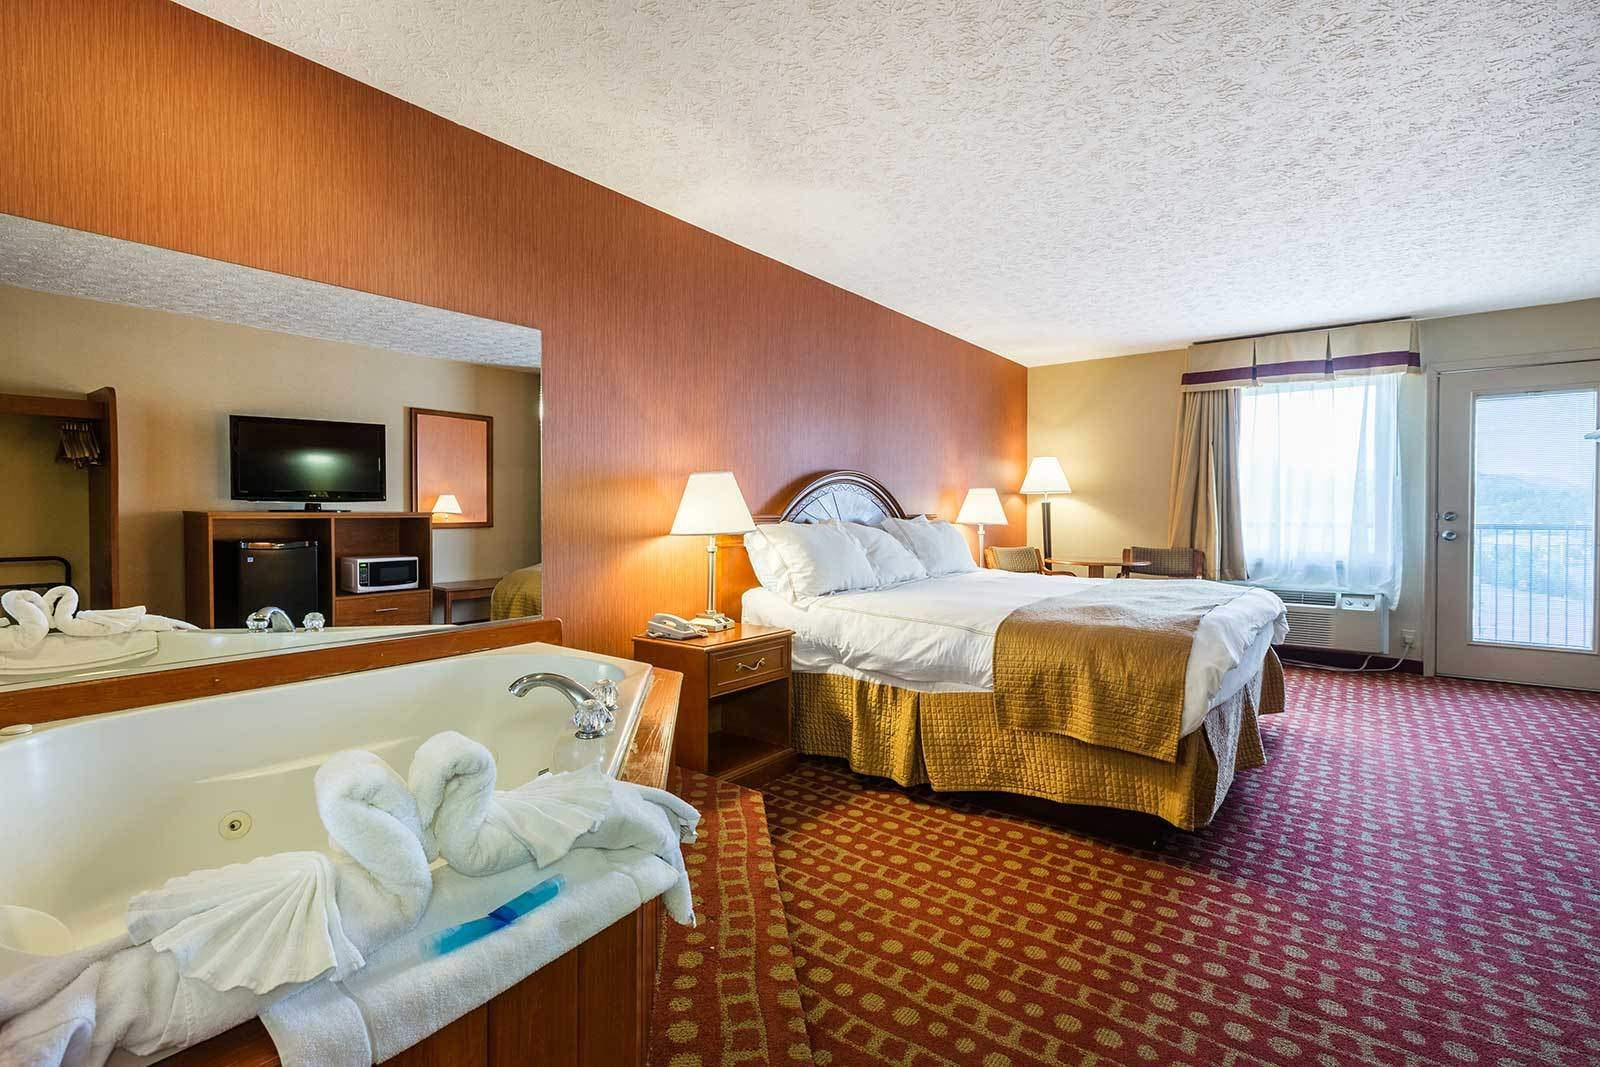 Best Hotels With 2 Bedroom Suites In Pigeon Forge Tn Www With Pictures